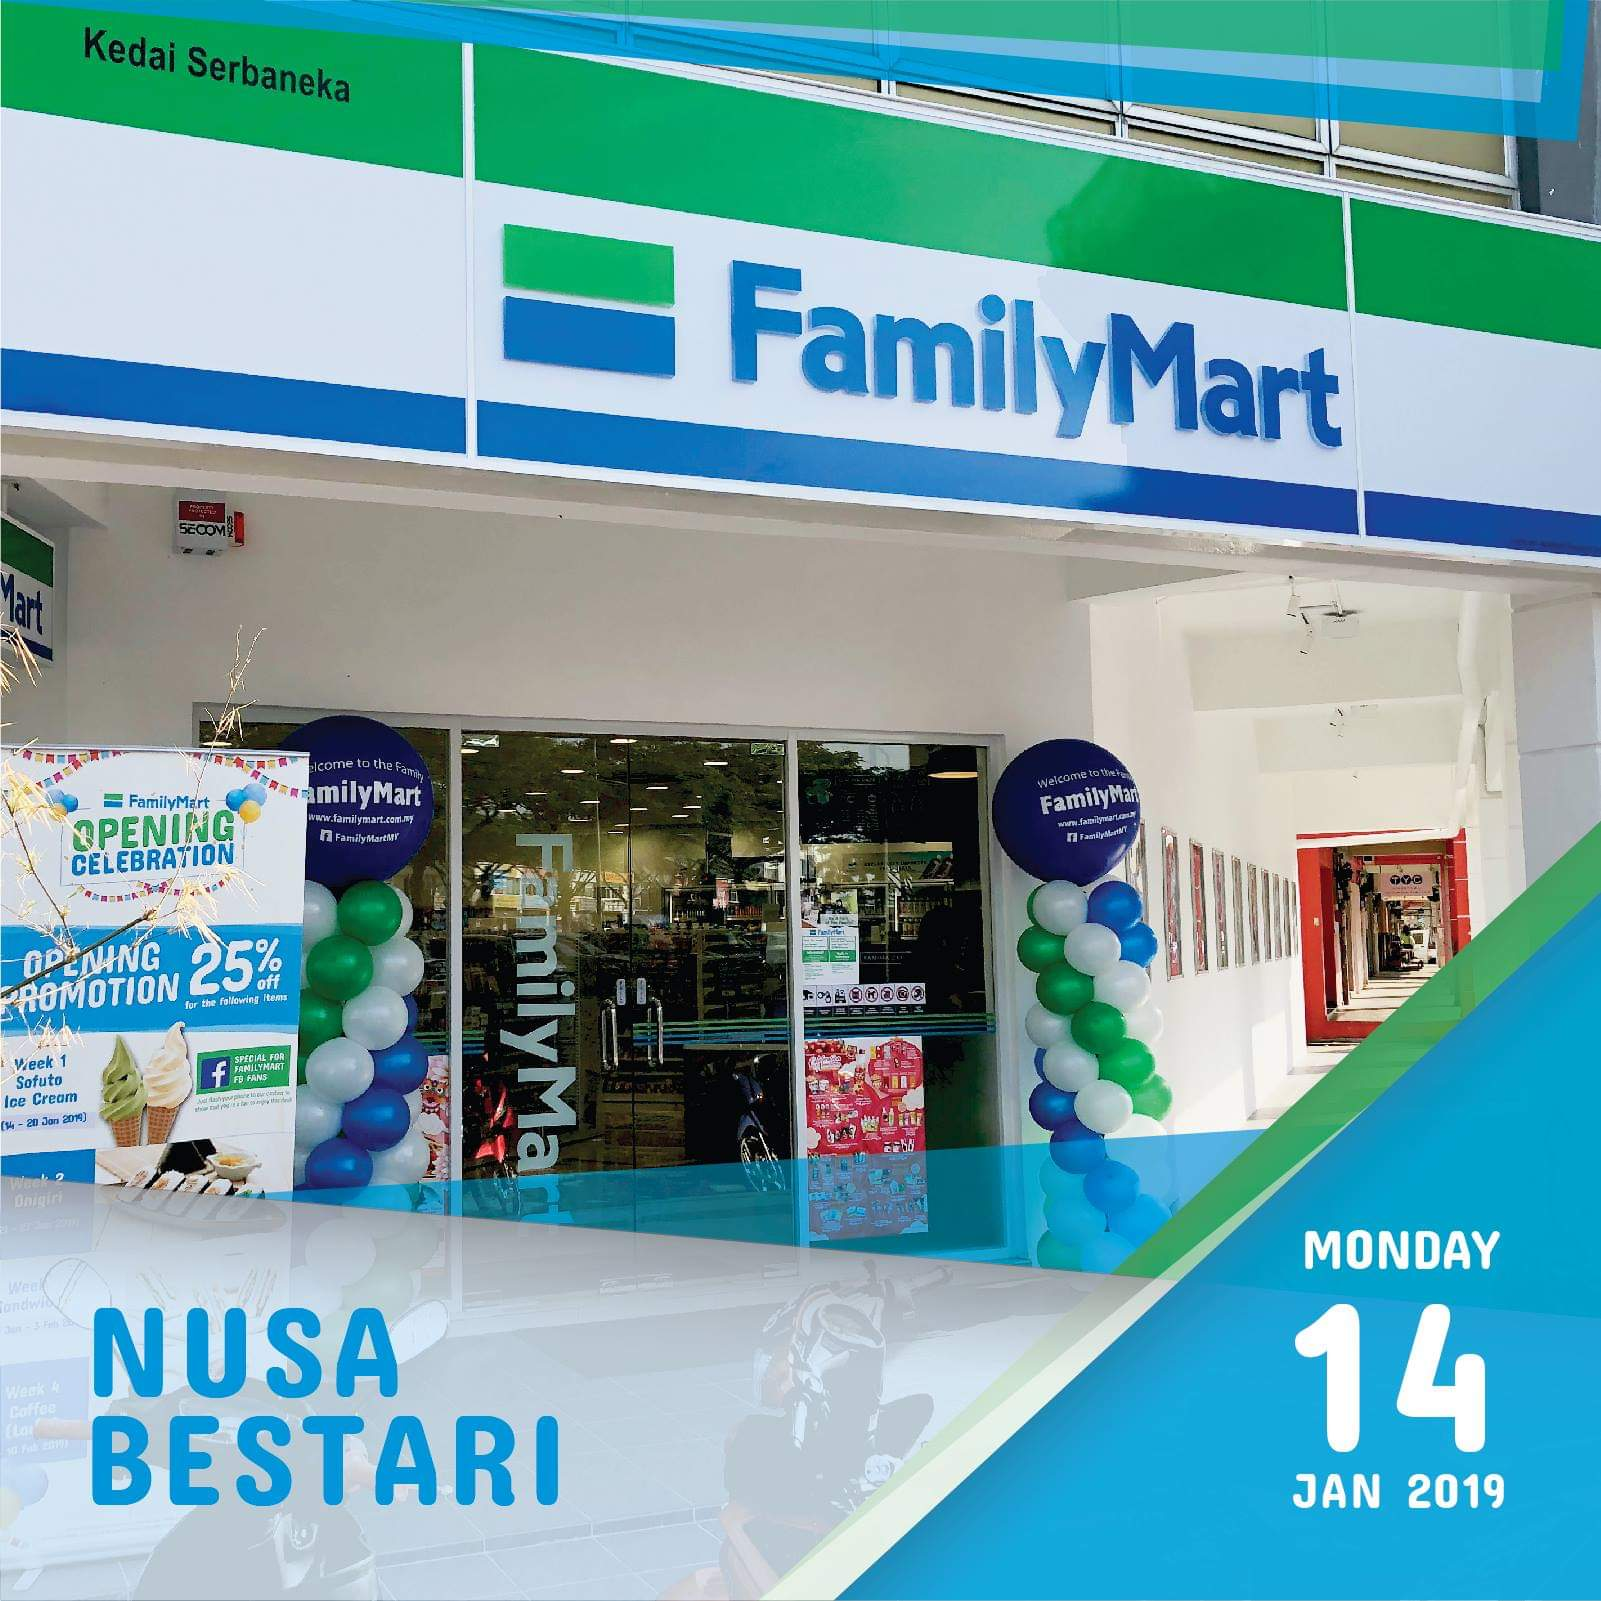 Family Mart Nusa Bestari (New Outlet)